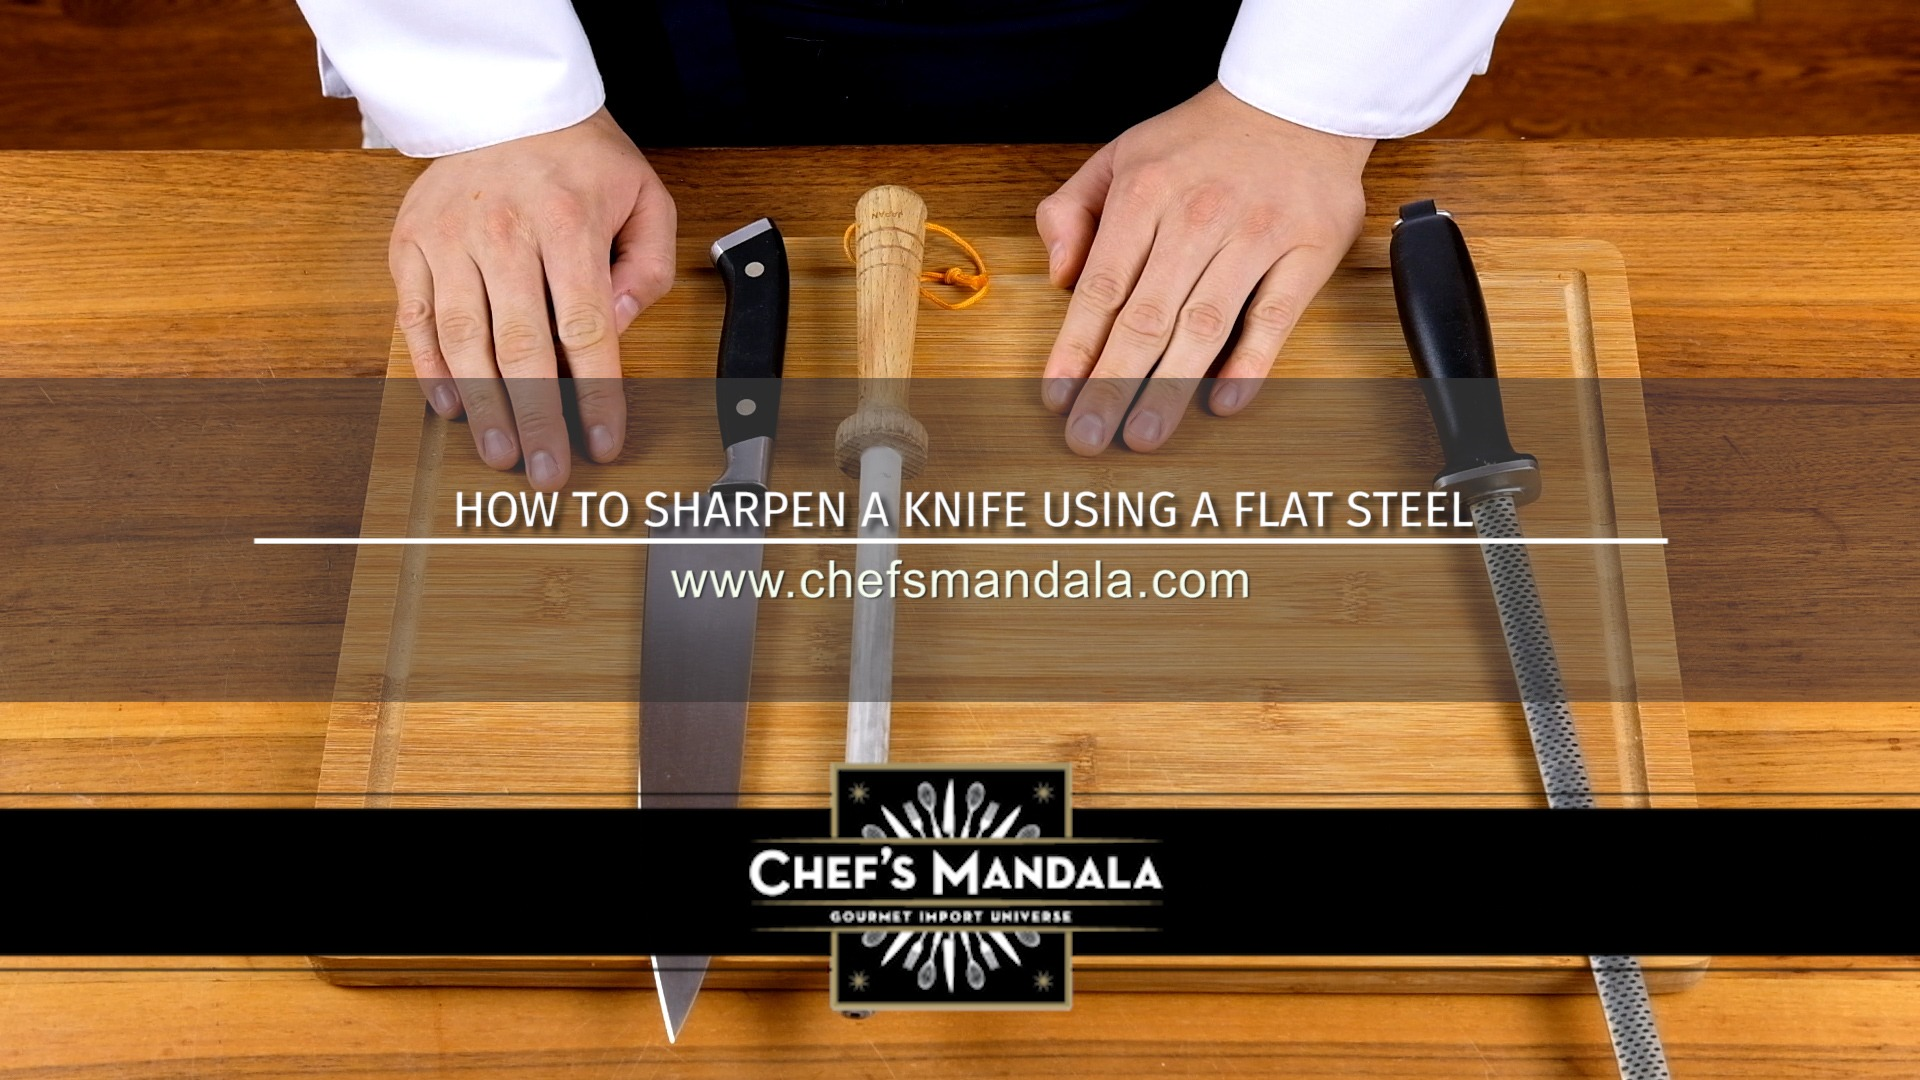 HOW TO SHARPEN A KNIFE USING A FLAT STEEL